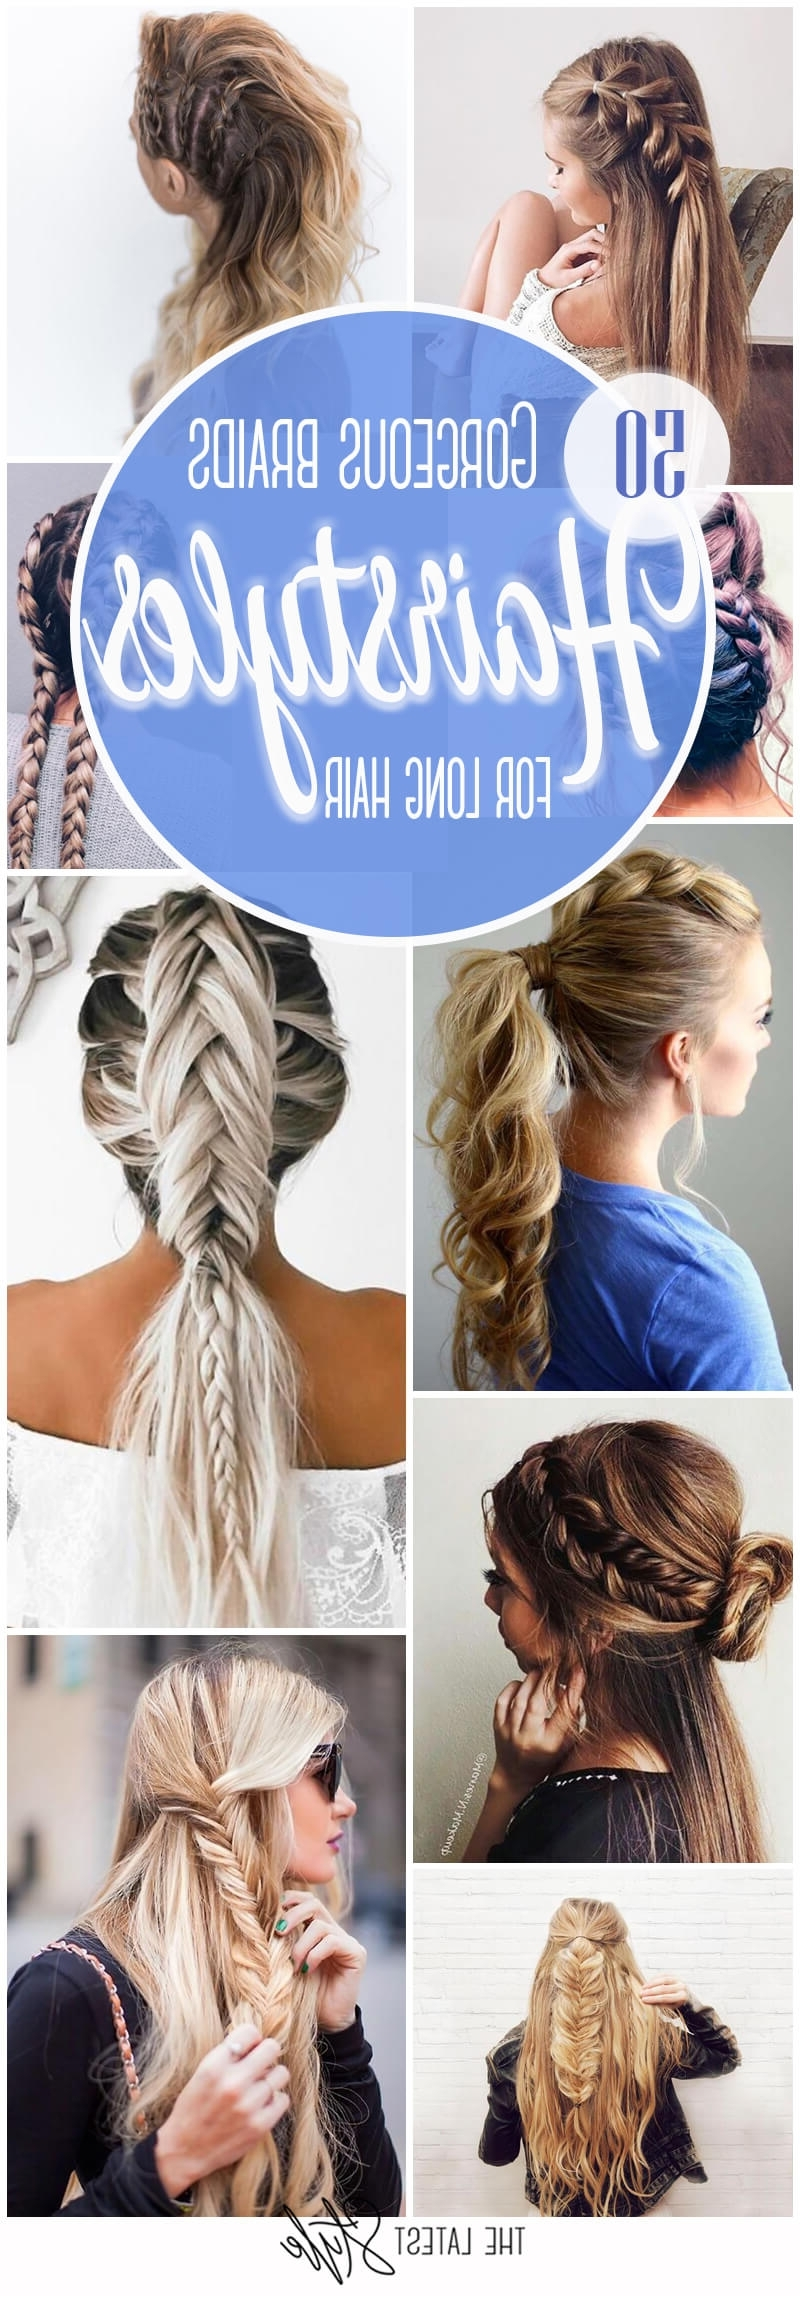 50 Gorgeous Braids Hairstyles For Long Hair Inside Current Long Braided Flowing Hairstyles (View 4 of 15)